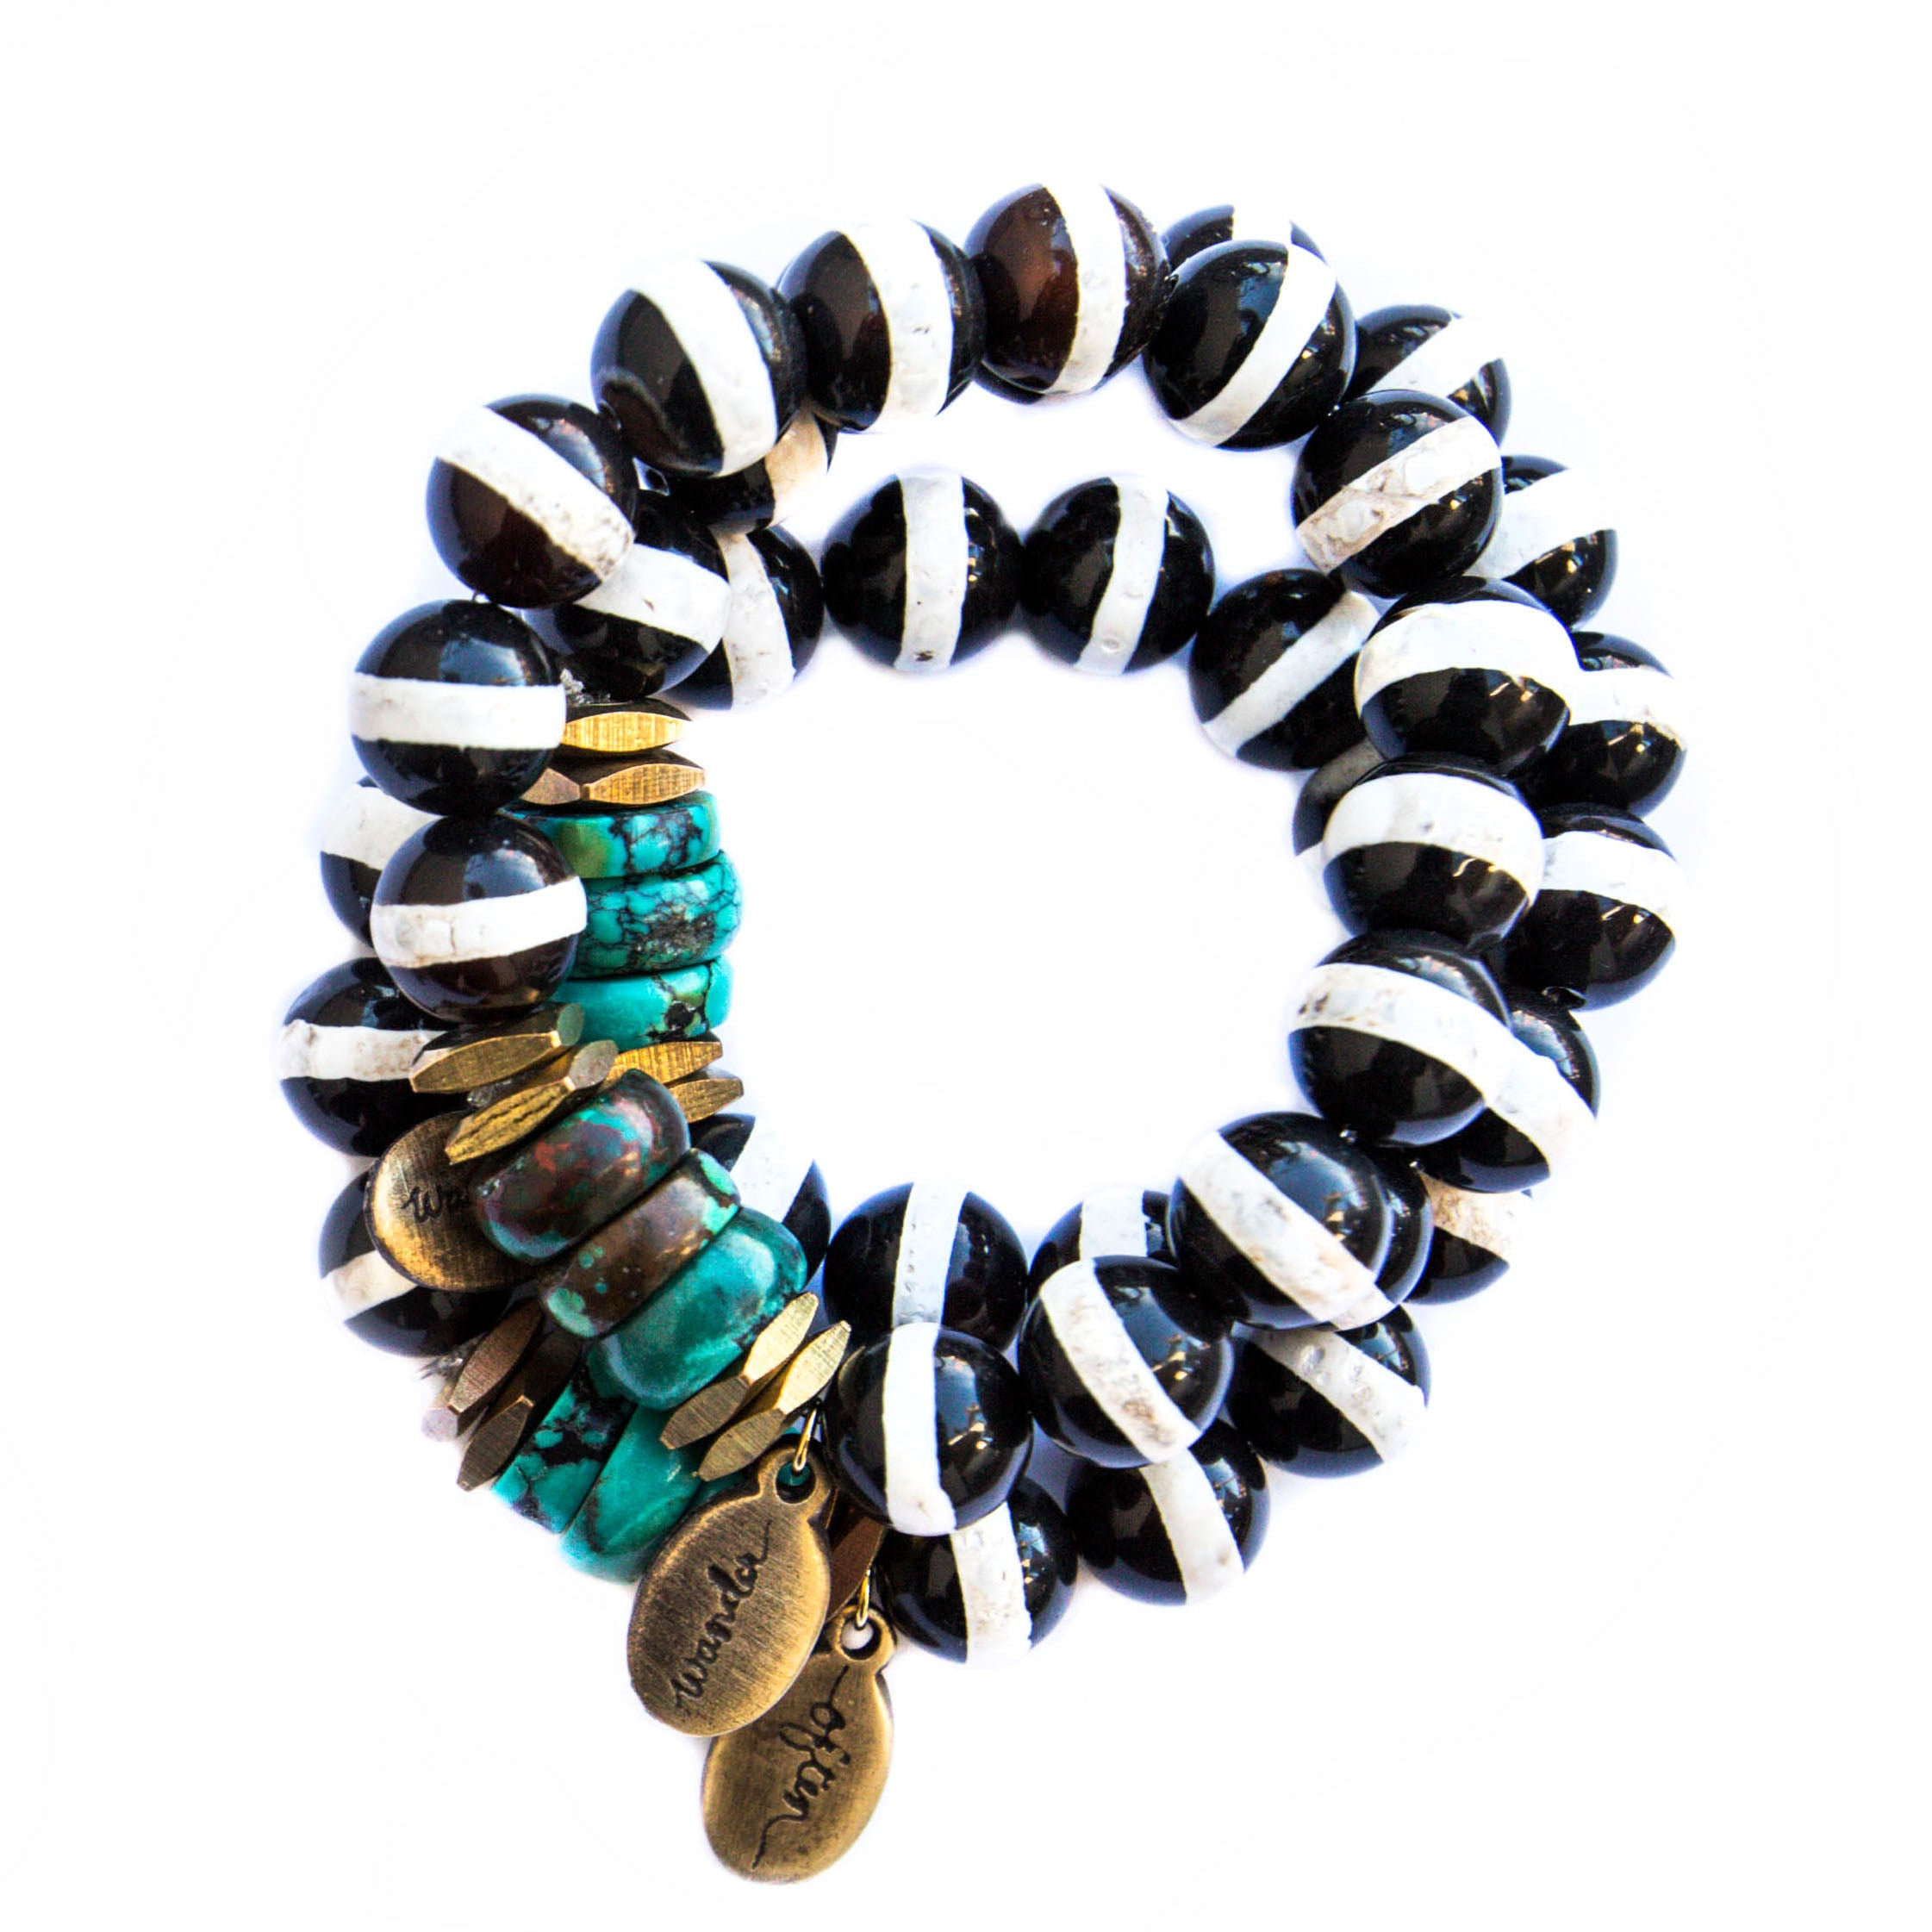 **NEW** Beaded Bracelet  - Jumbo Striped Black Agate with Accent